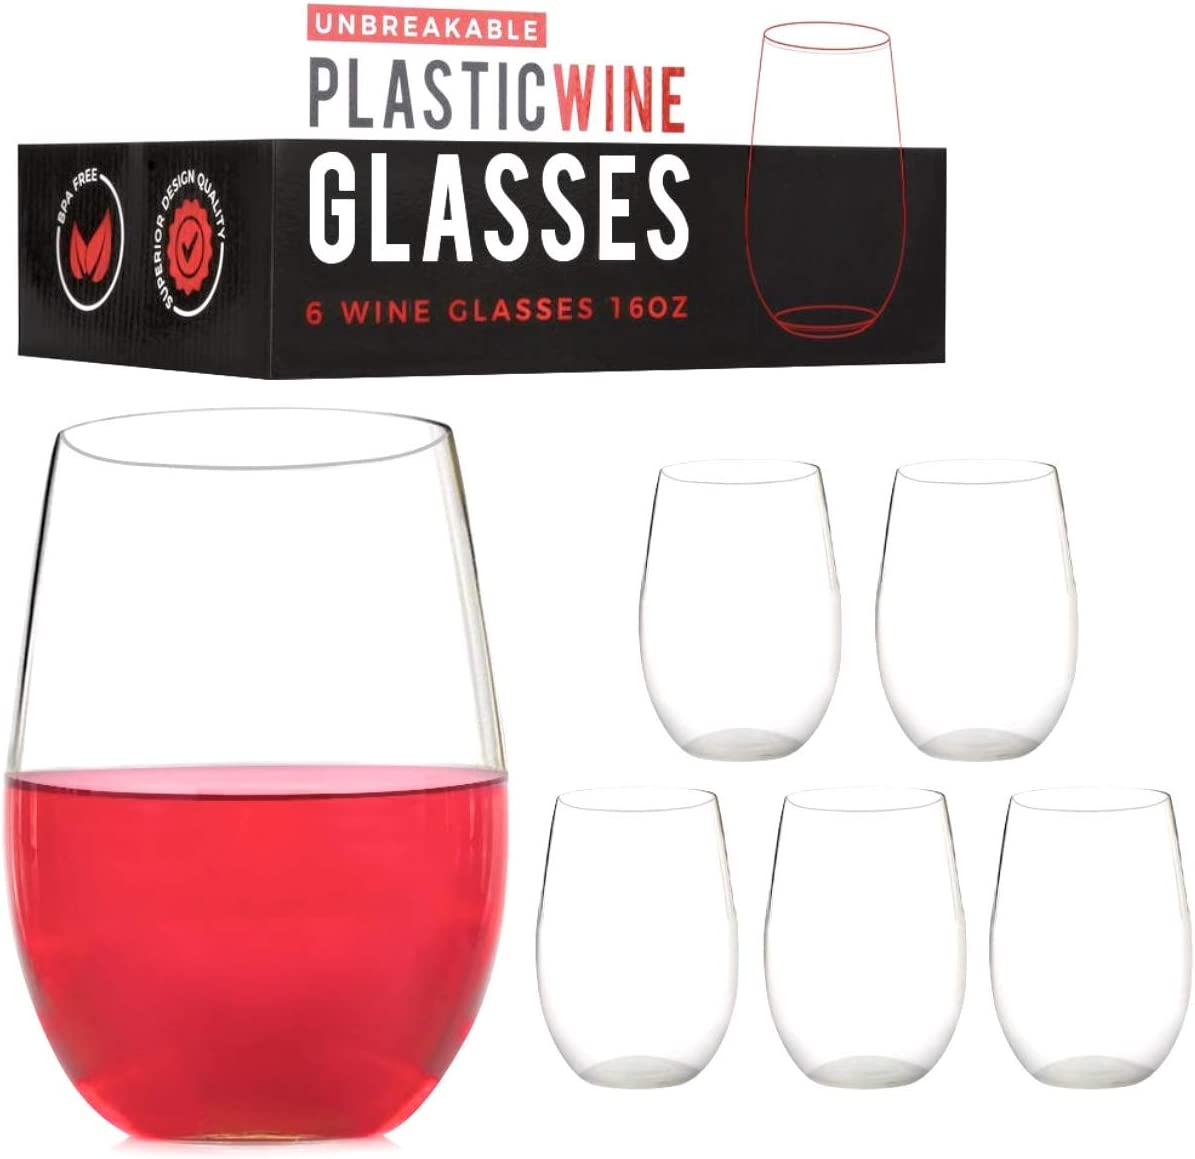 ConnectedPlus Stemless Plastic Wine Glasses: 16 oz Set of 6 Shatterproof Tritan, Unbreakable Party Glass Wine Tumblers - Reusable Stemless Wine Cups Perfect for Outdoor Picnics or Pool Parties